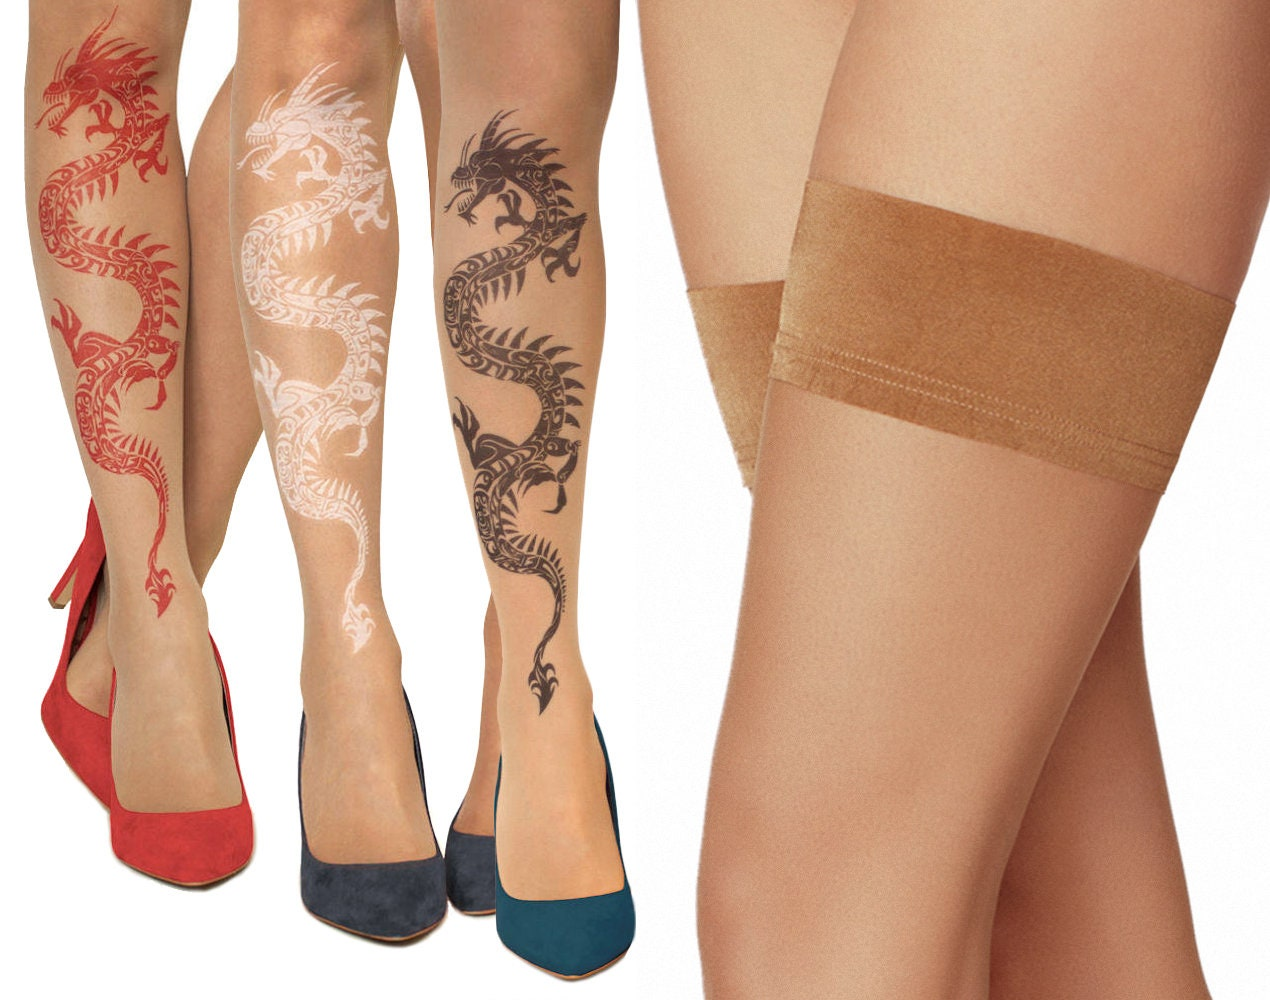 64b1fa80a22 Tattoo Hold-Ups Thigh Highs Stockings with Tribal Dragon